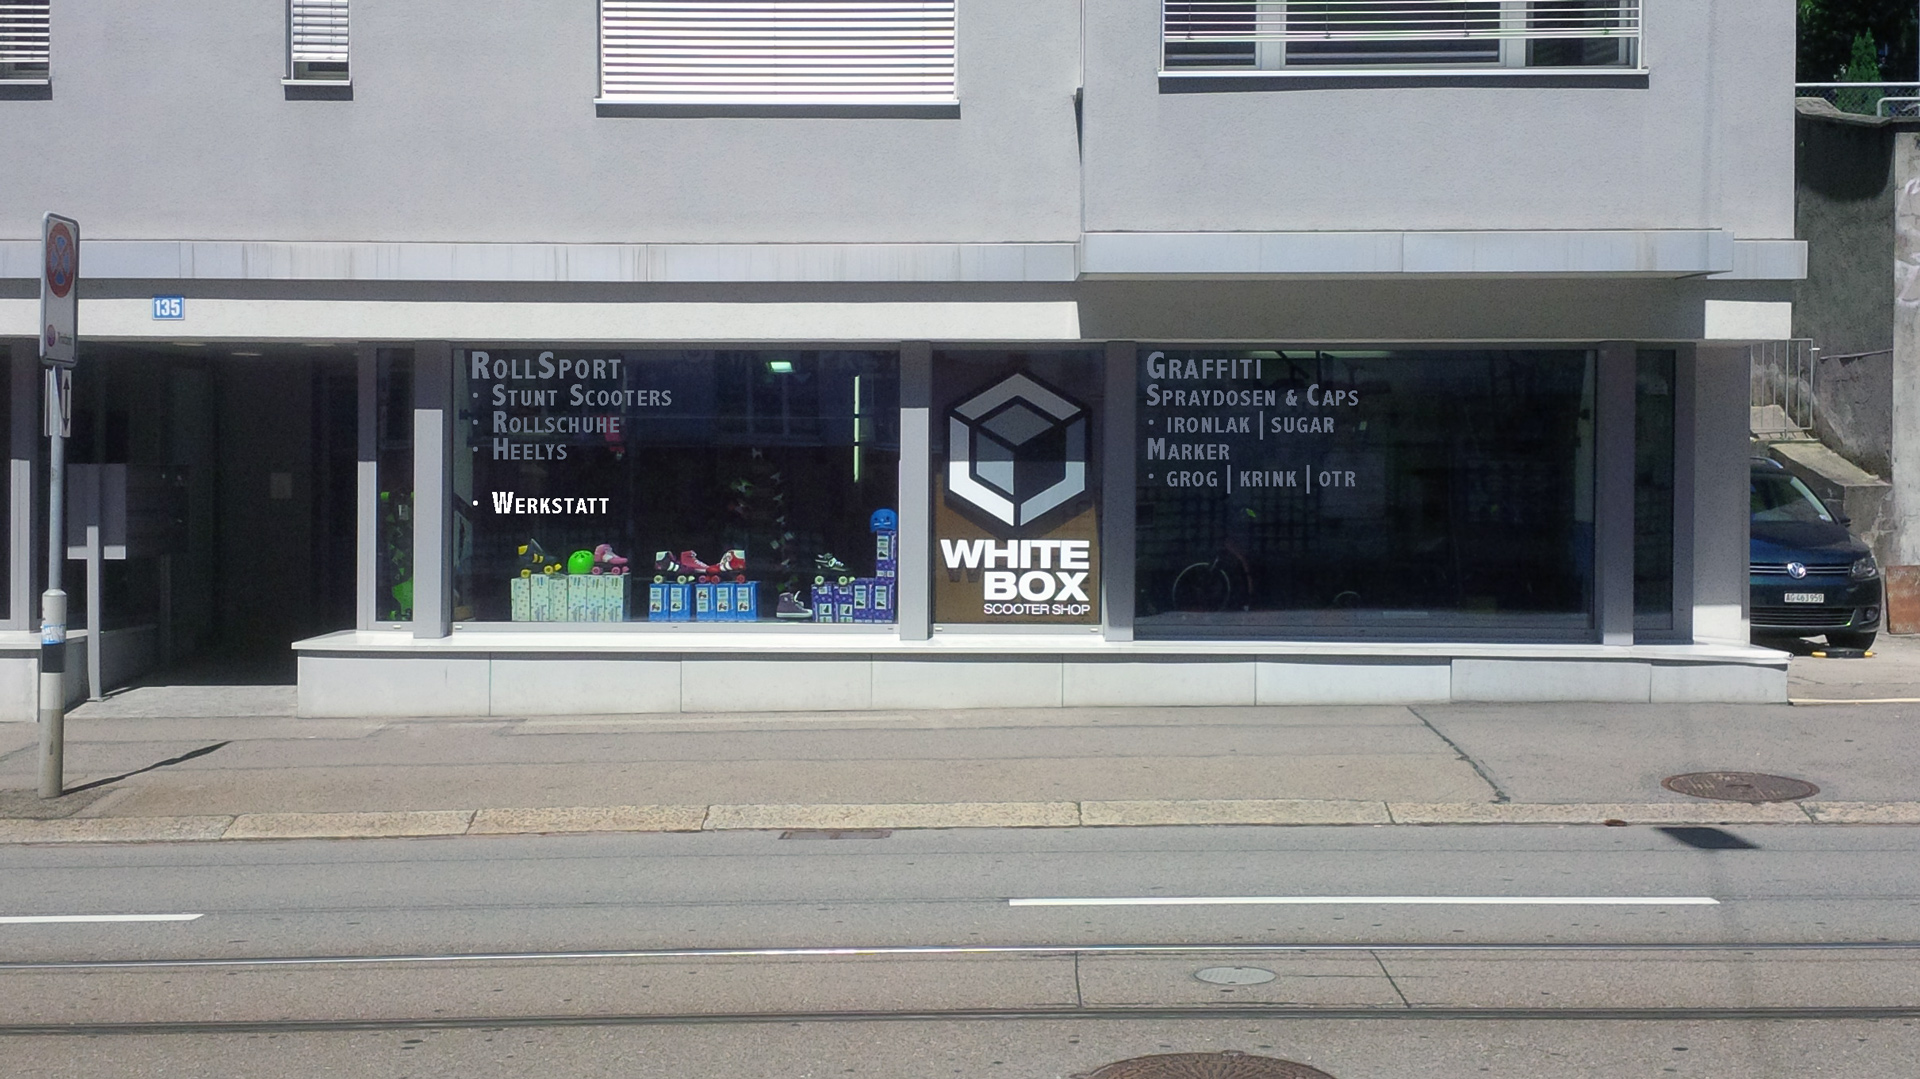 Whitebox Shop